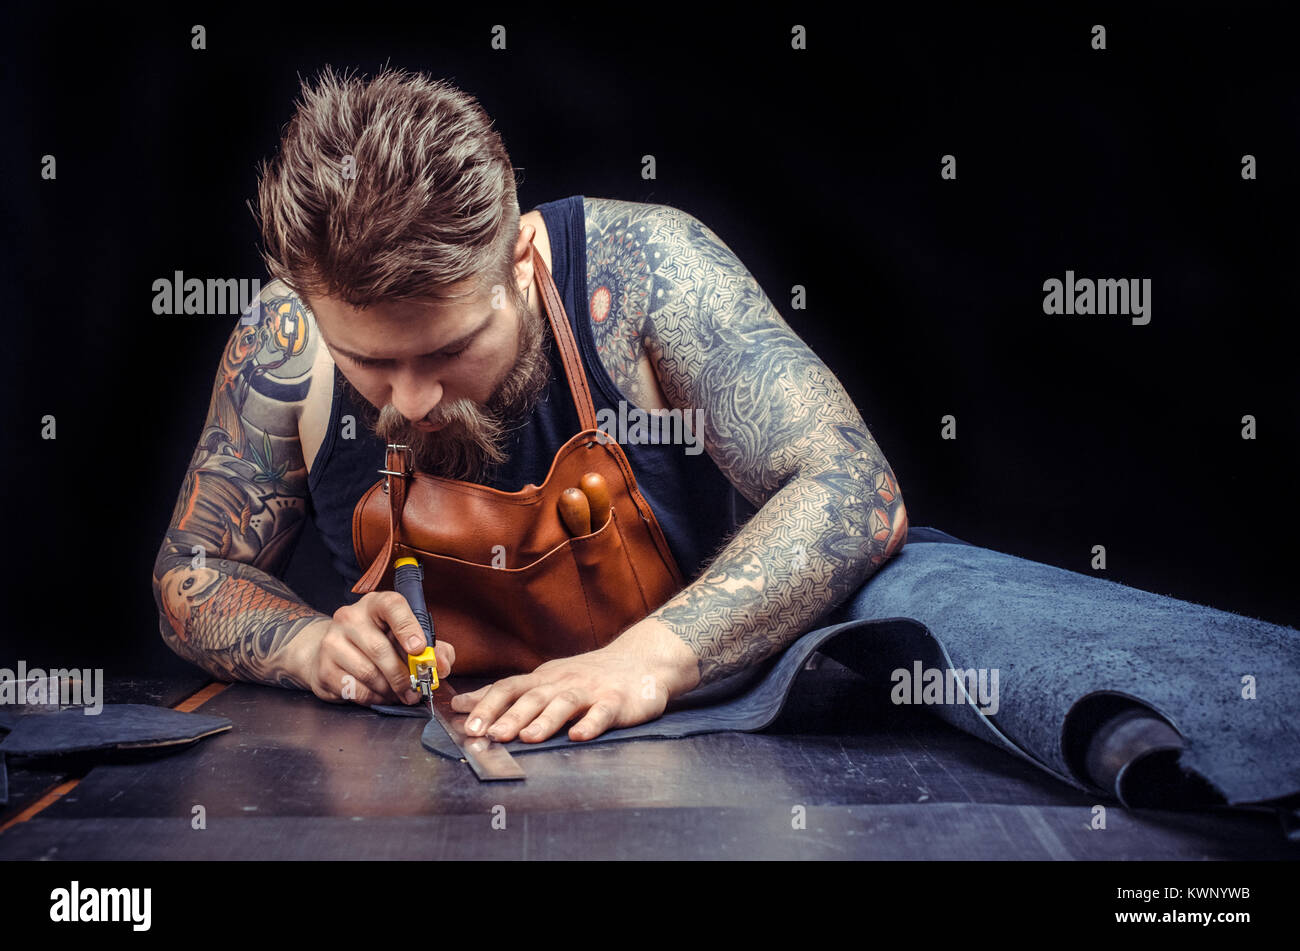 Man working with leather processes a workpiece from leather in the place of work - Stock Image